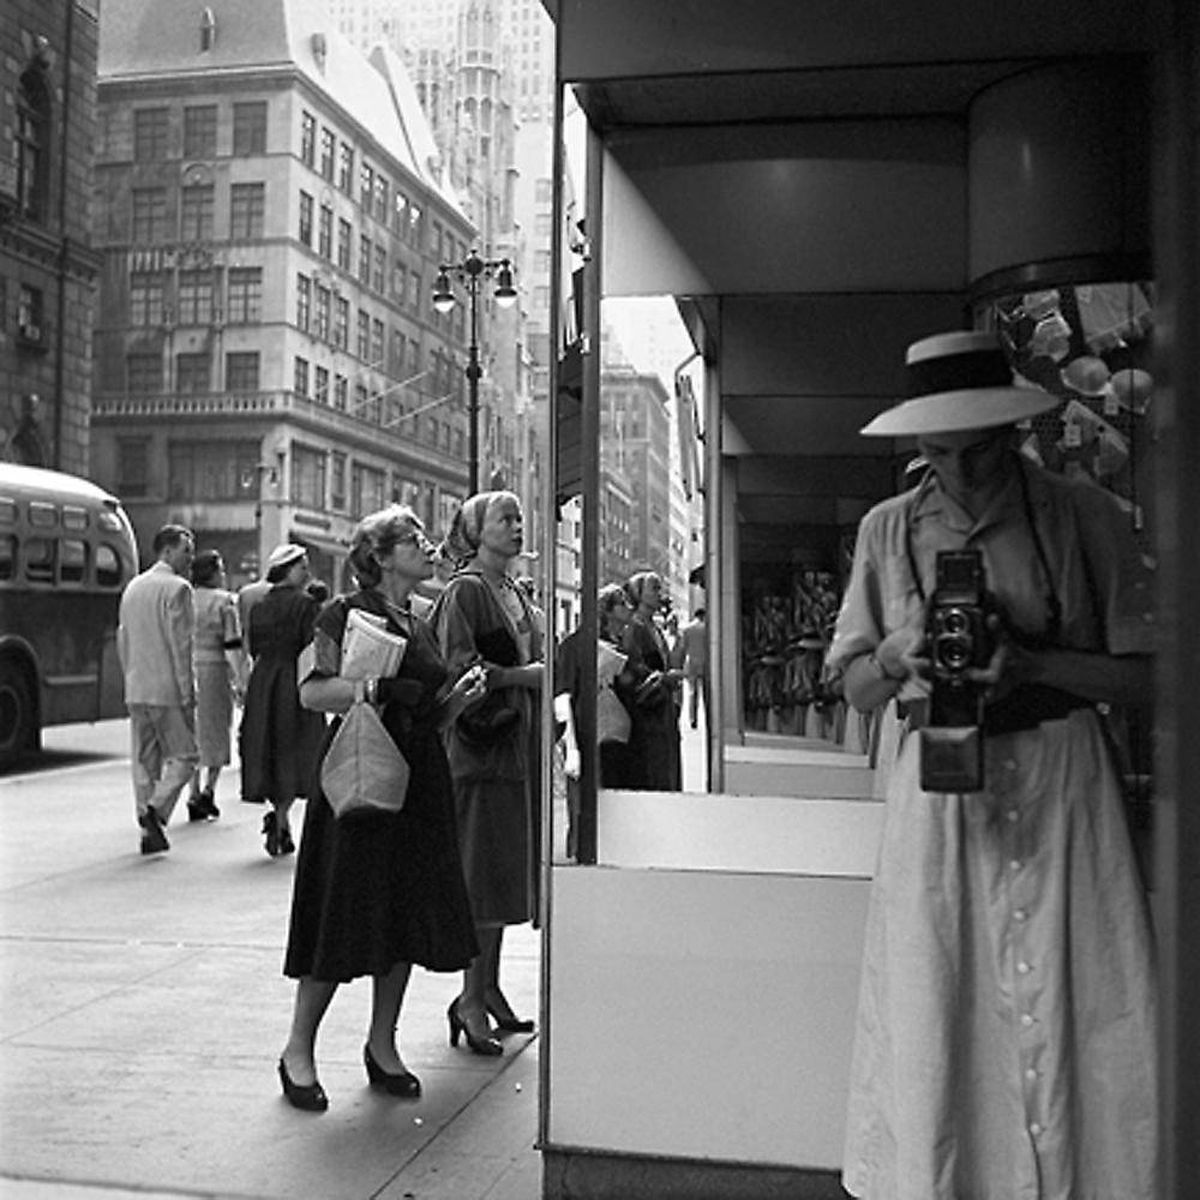 ©Vivian Maier/Maloof Collection